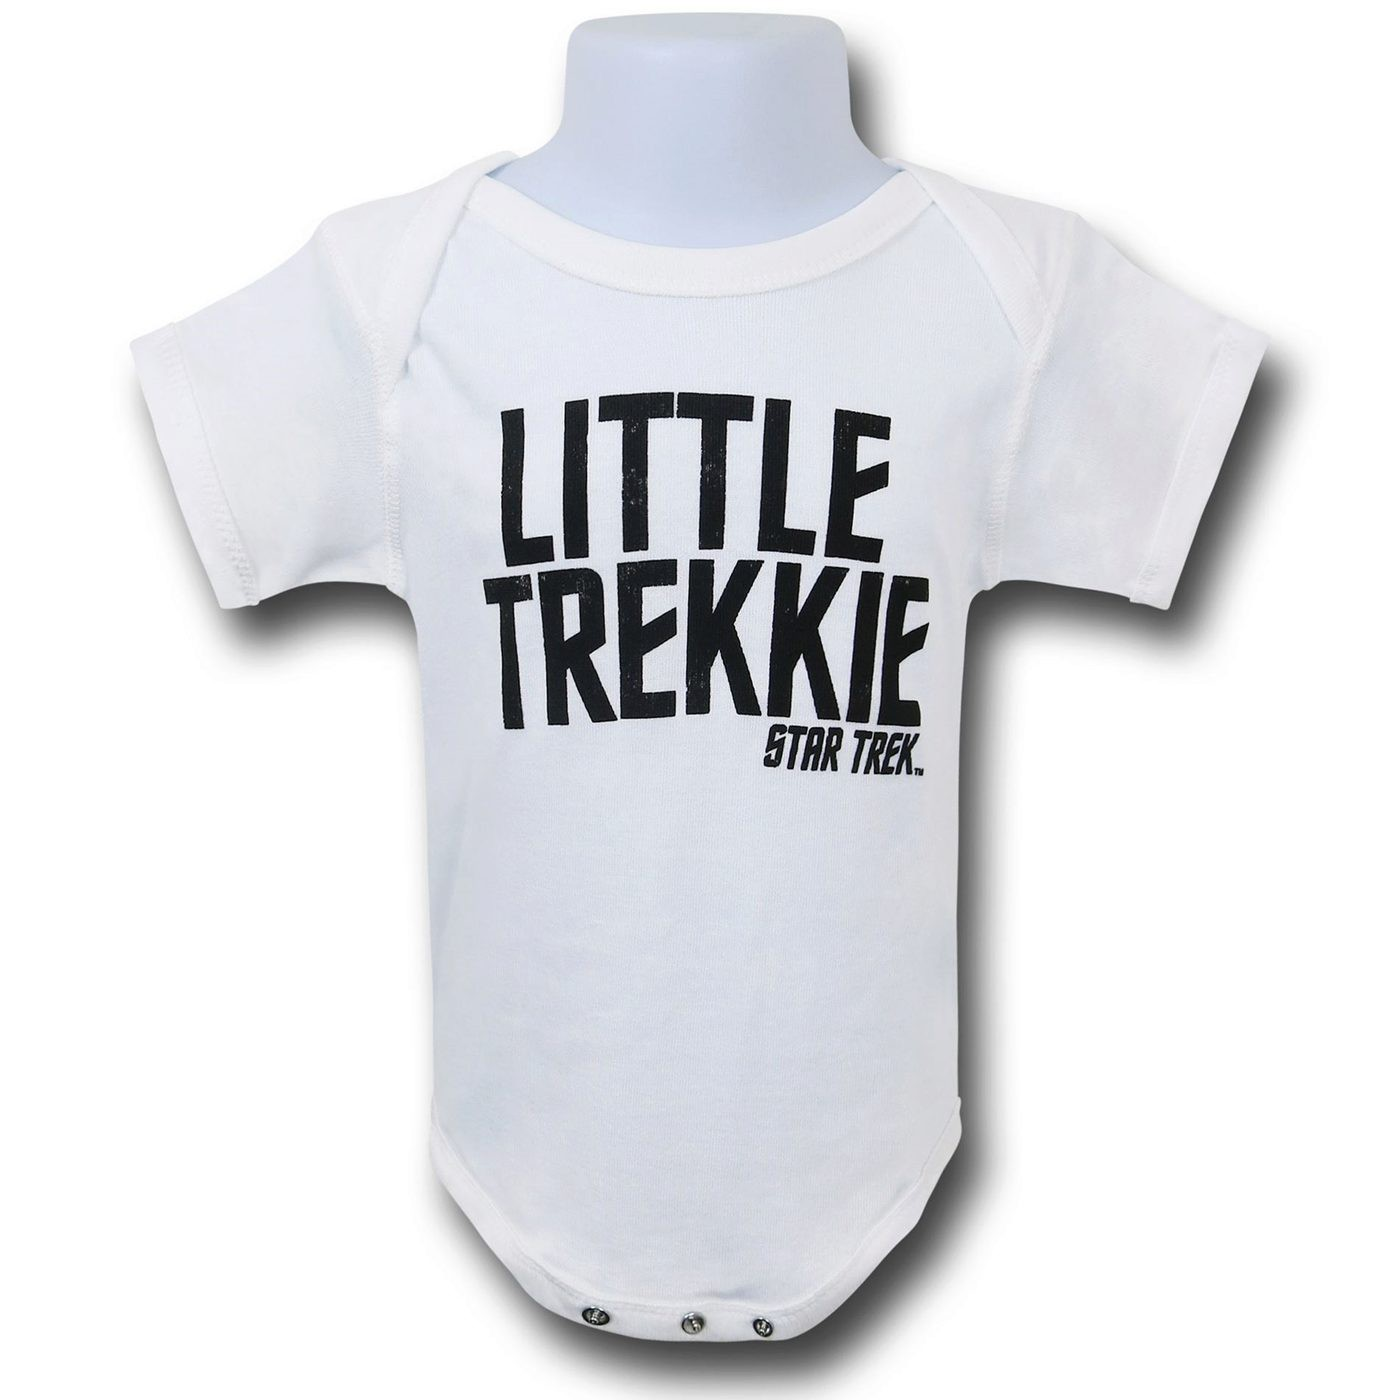 Star Trek Little Trekkie Infant Snapsuit